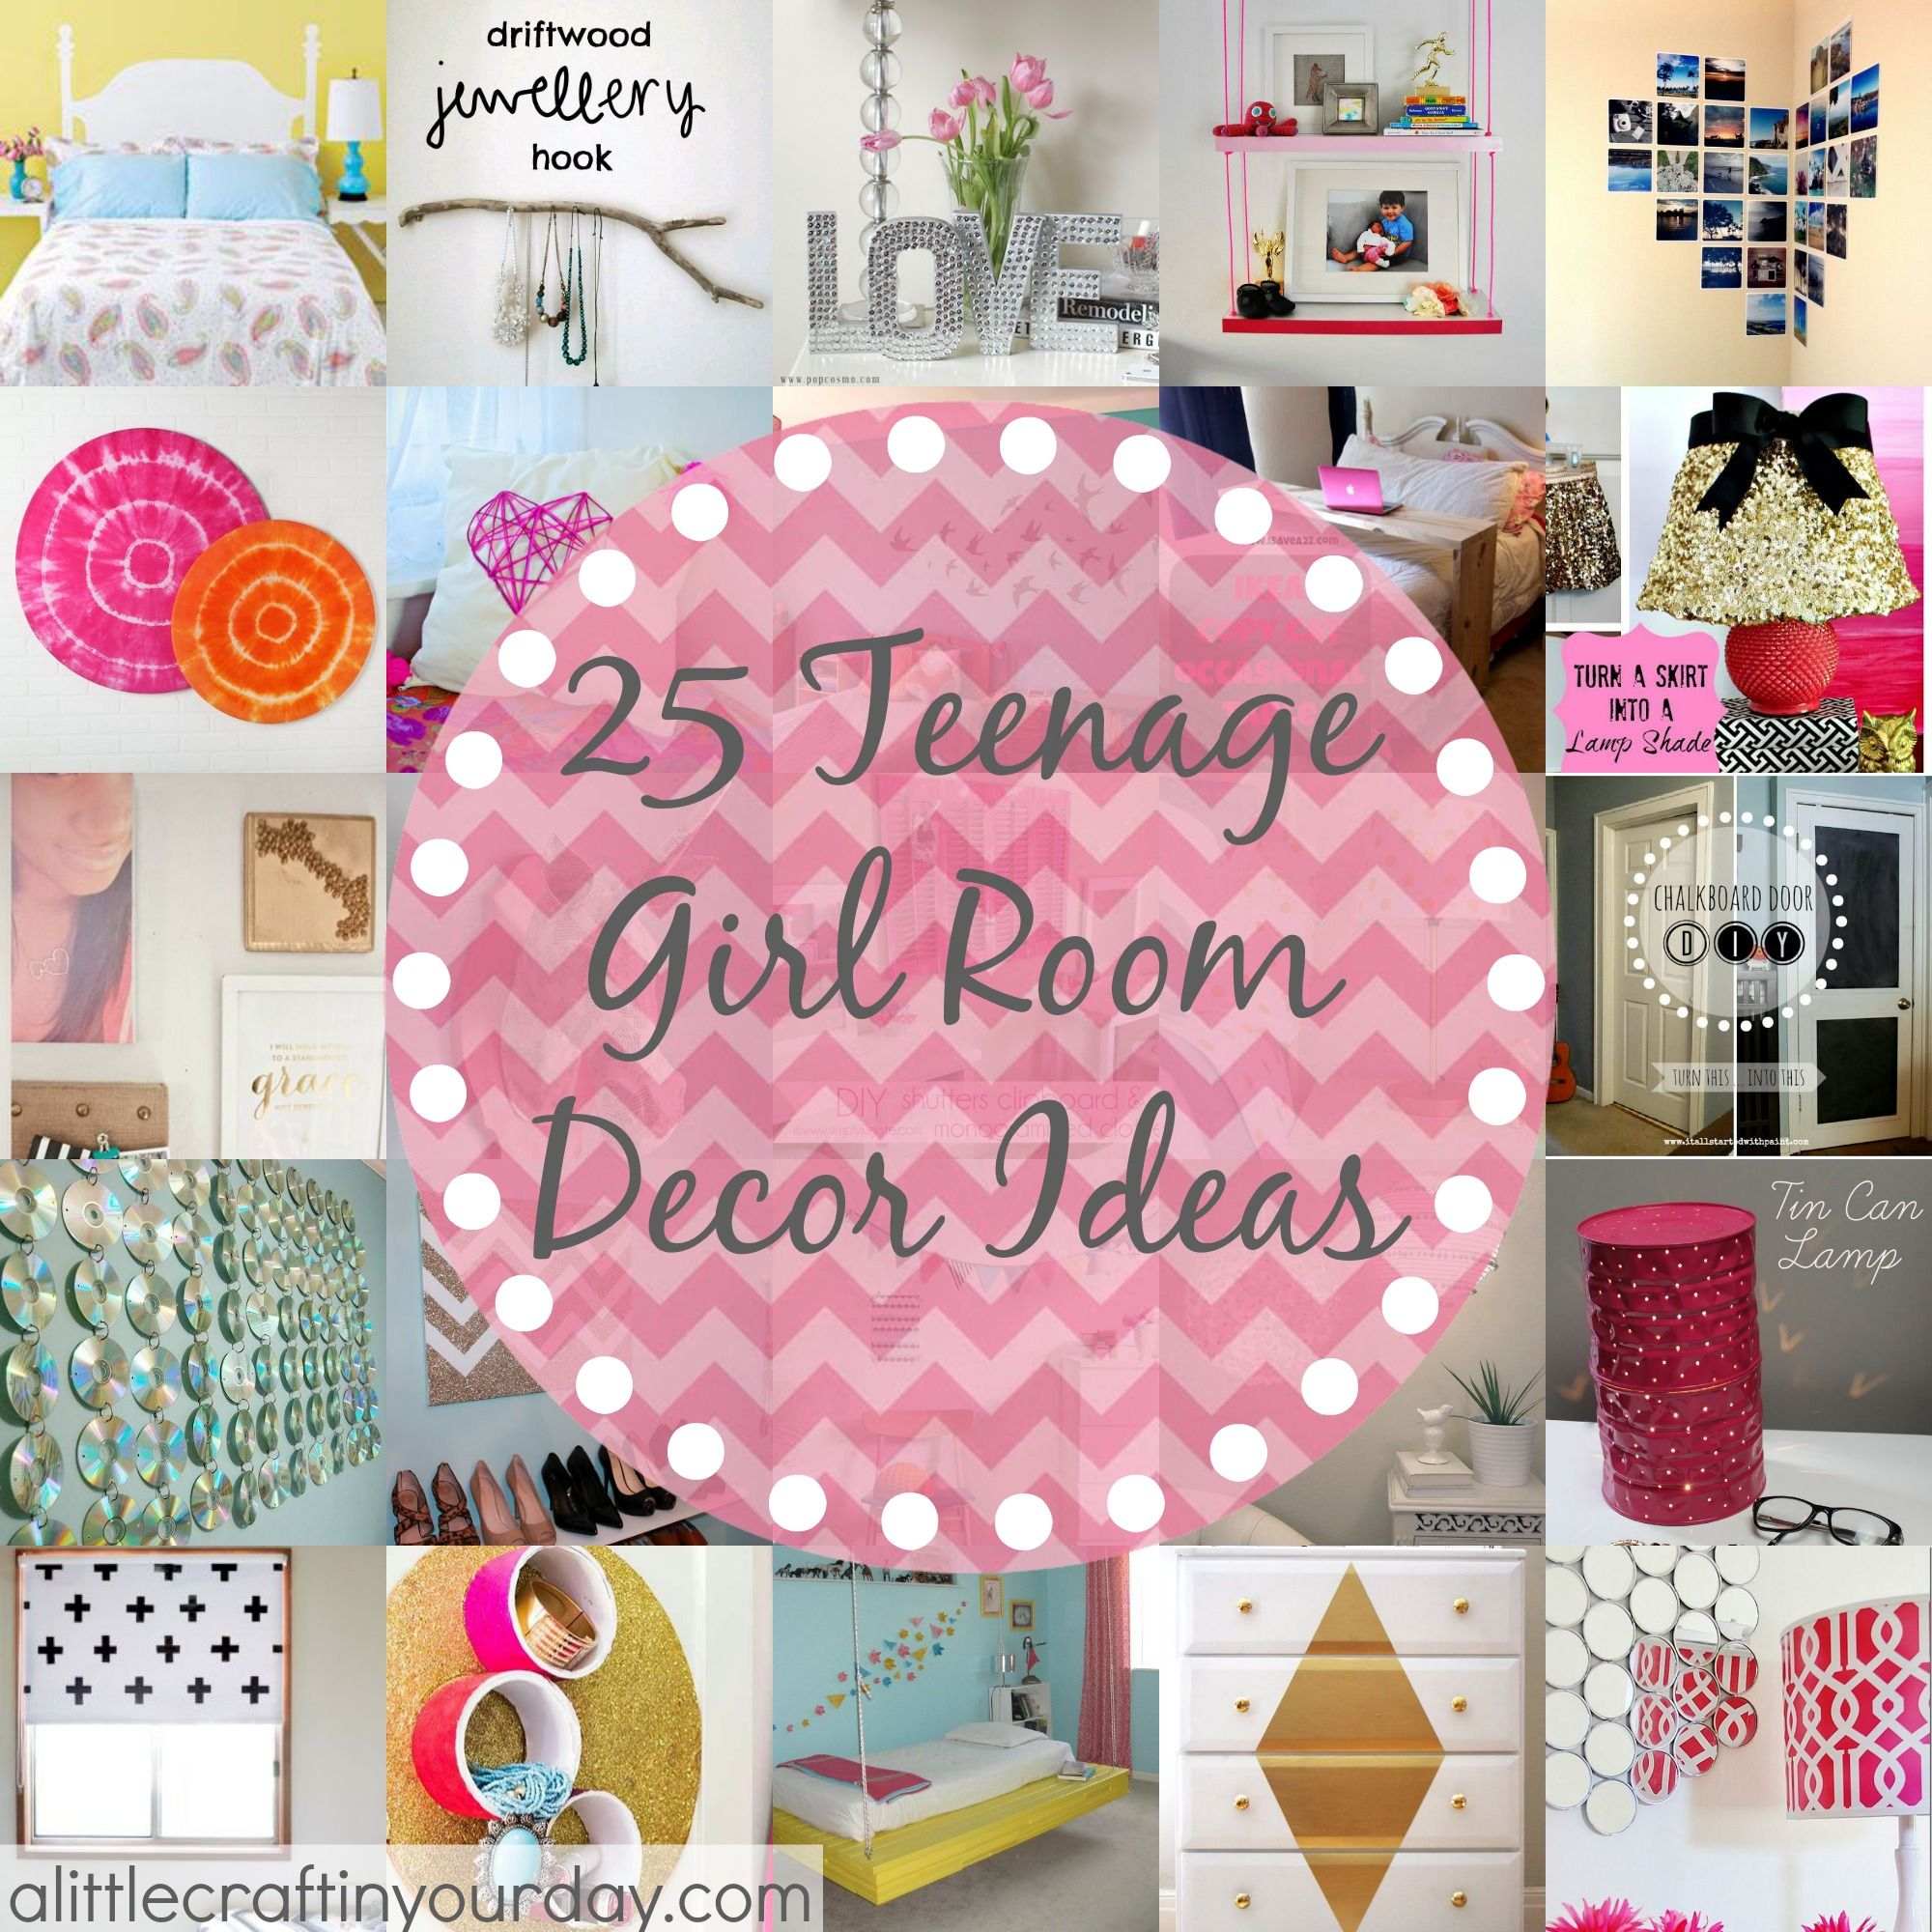 Girls Room Decorations 25 More Teenage Girl Room Decor Ideas  Room Decor Room And Craft